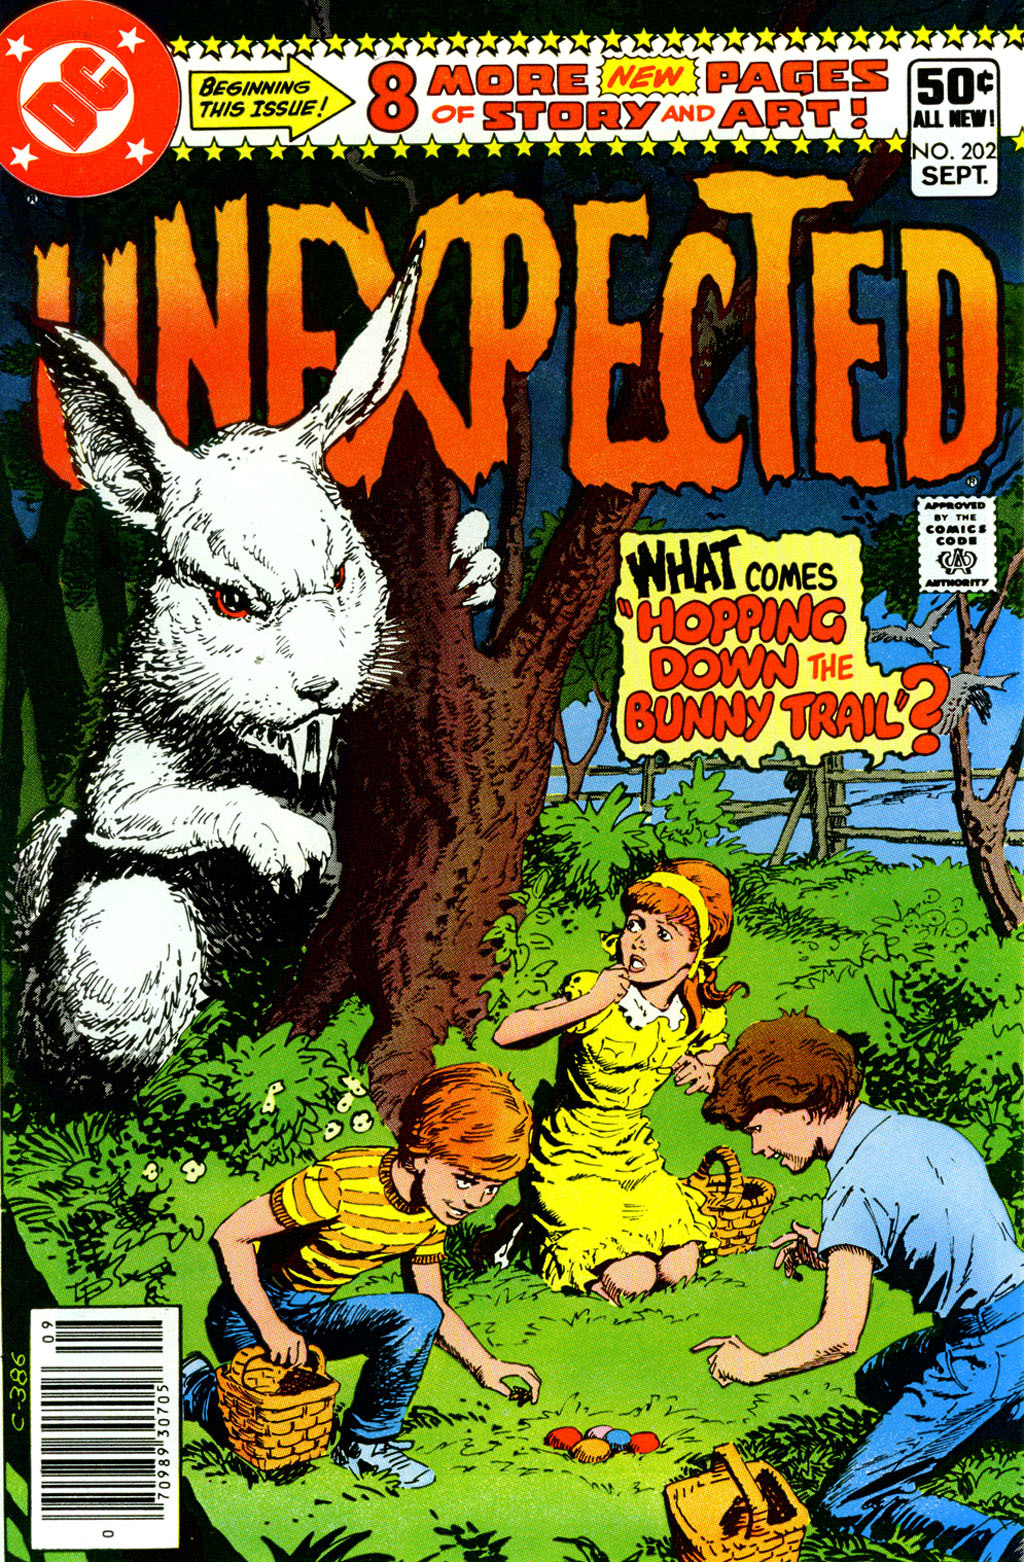 comicbookcovers: Happy Easter! The Unexpected #202, September 1980, cover by Luis Dominguez